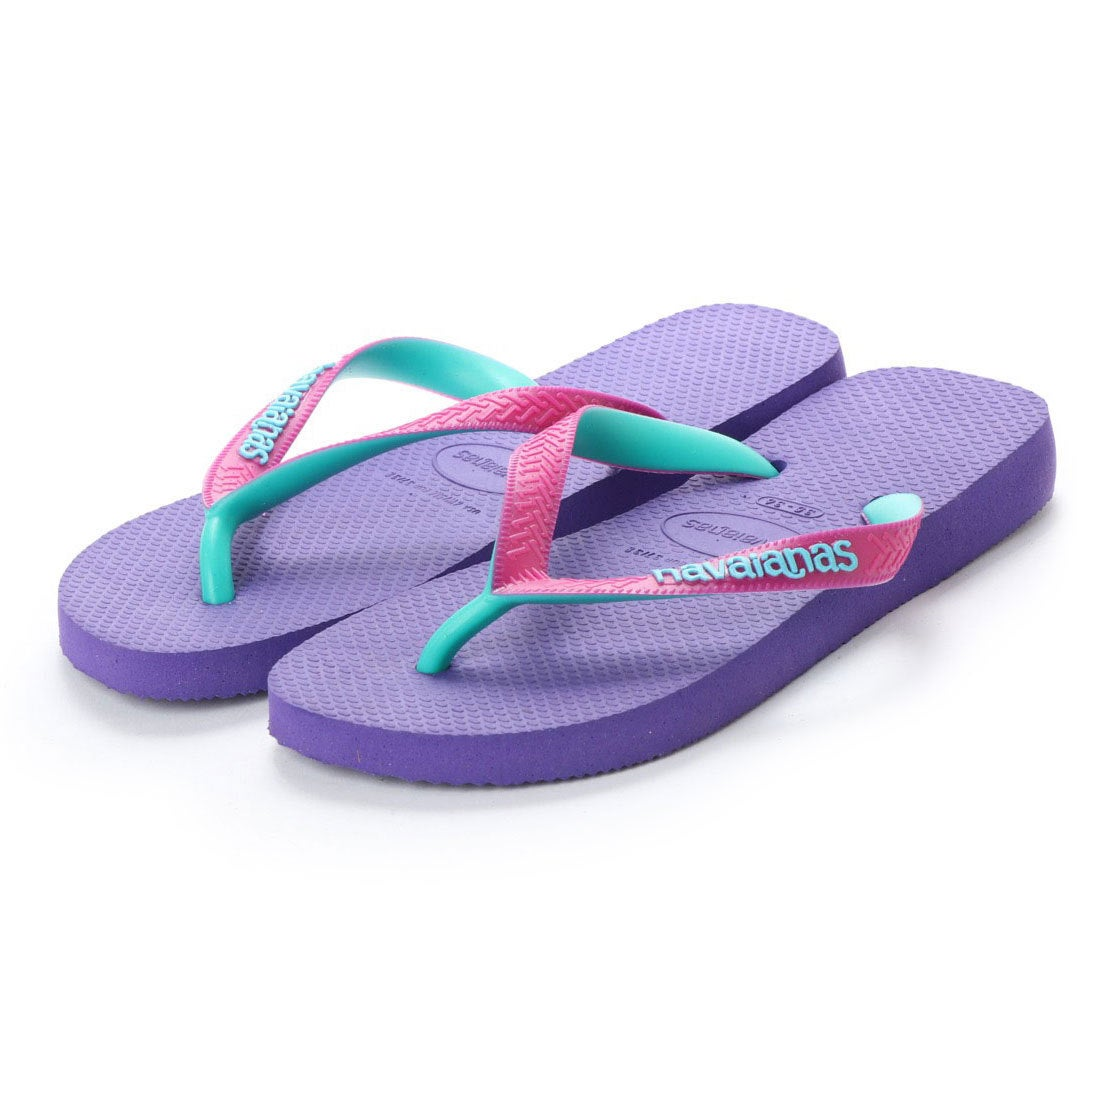 ハワイアナス havaianas TOP MIX (kids sizes) (purple / raspberry rose)